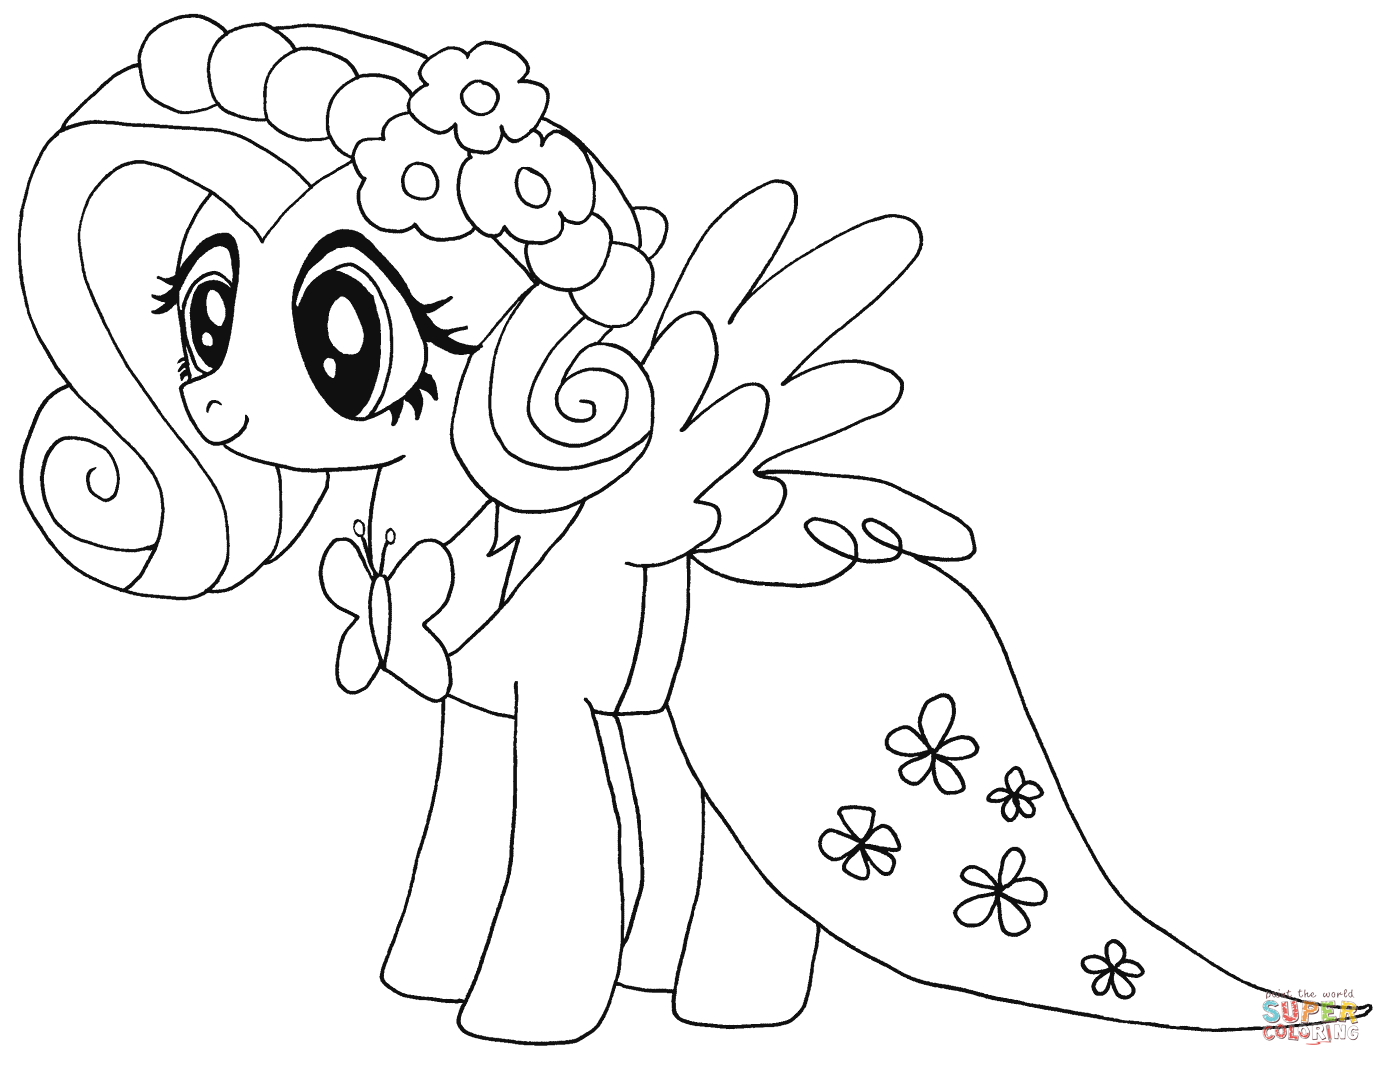 My Little Pony Fluttershy From My Little Pony Coloring Page My